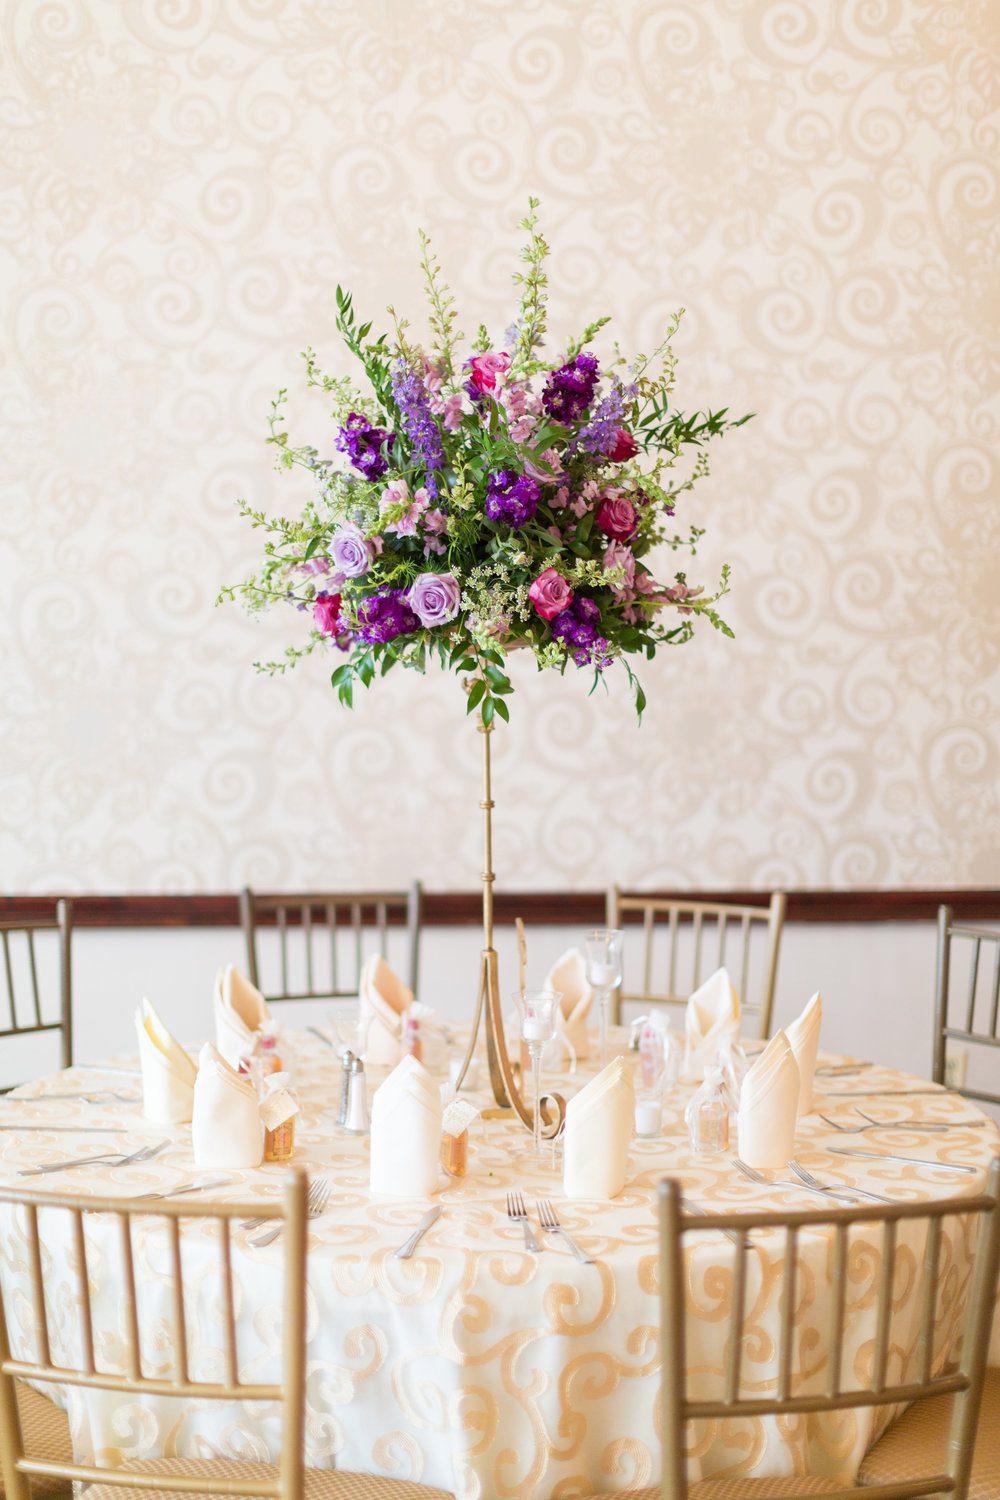 NJ Wedding, Running Deer Golf Club, Purple Flowers, Lavender Wedding, Florist, A Garden Party, Compote, Centerpiece, Tami & Ryan Photography